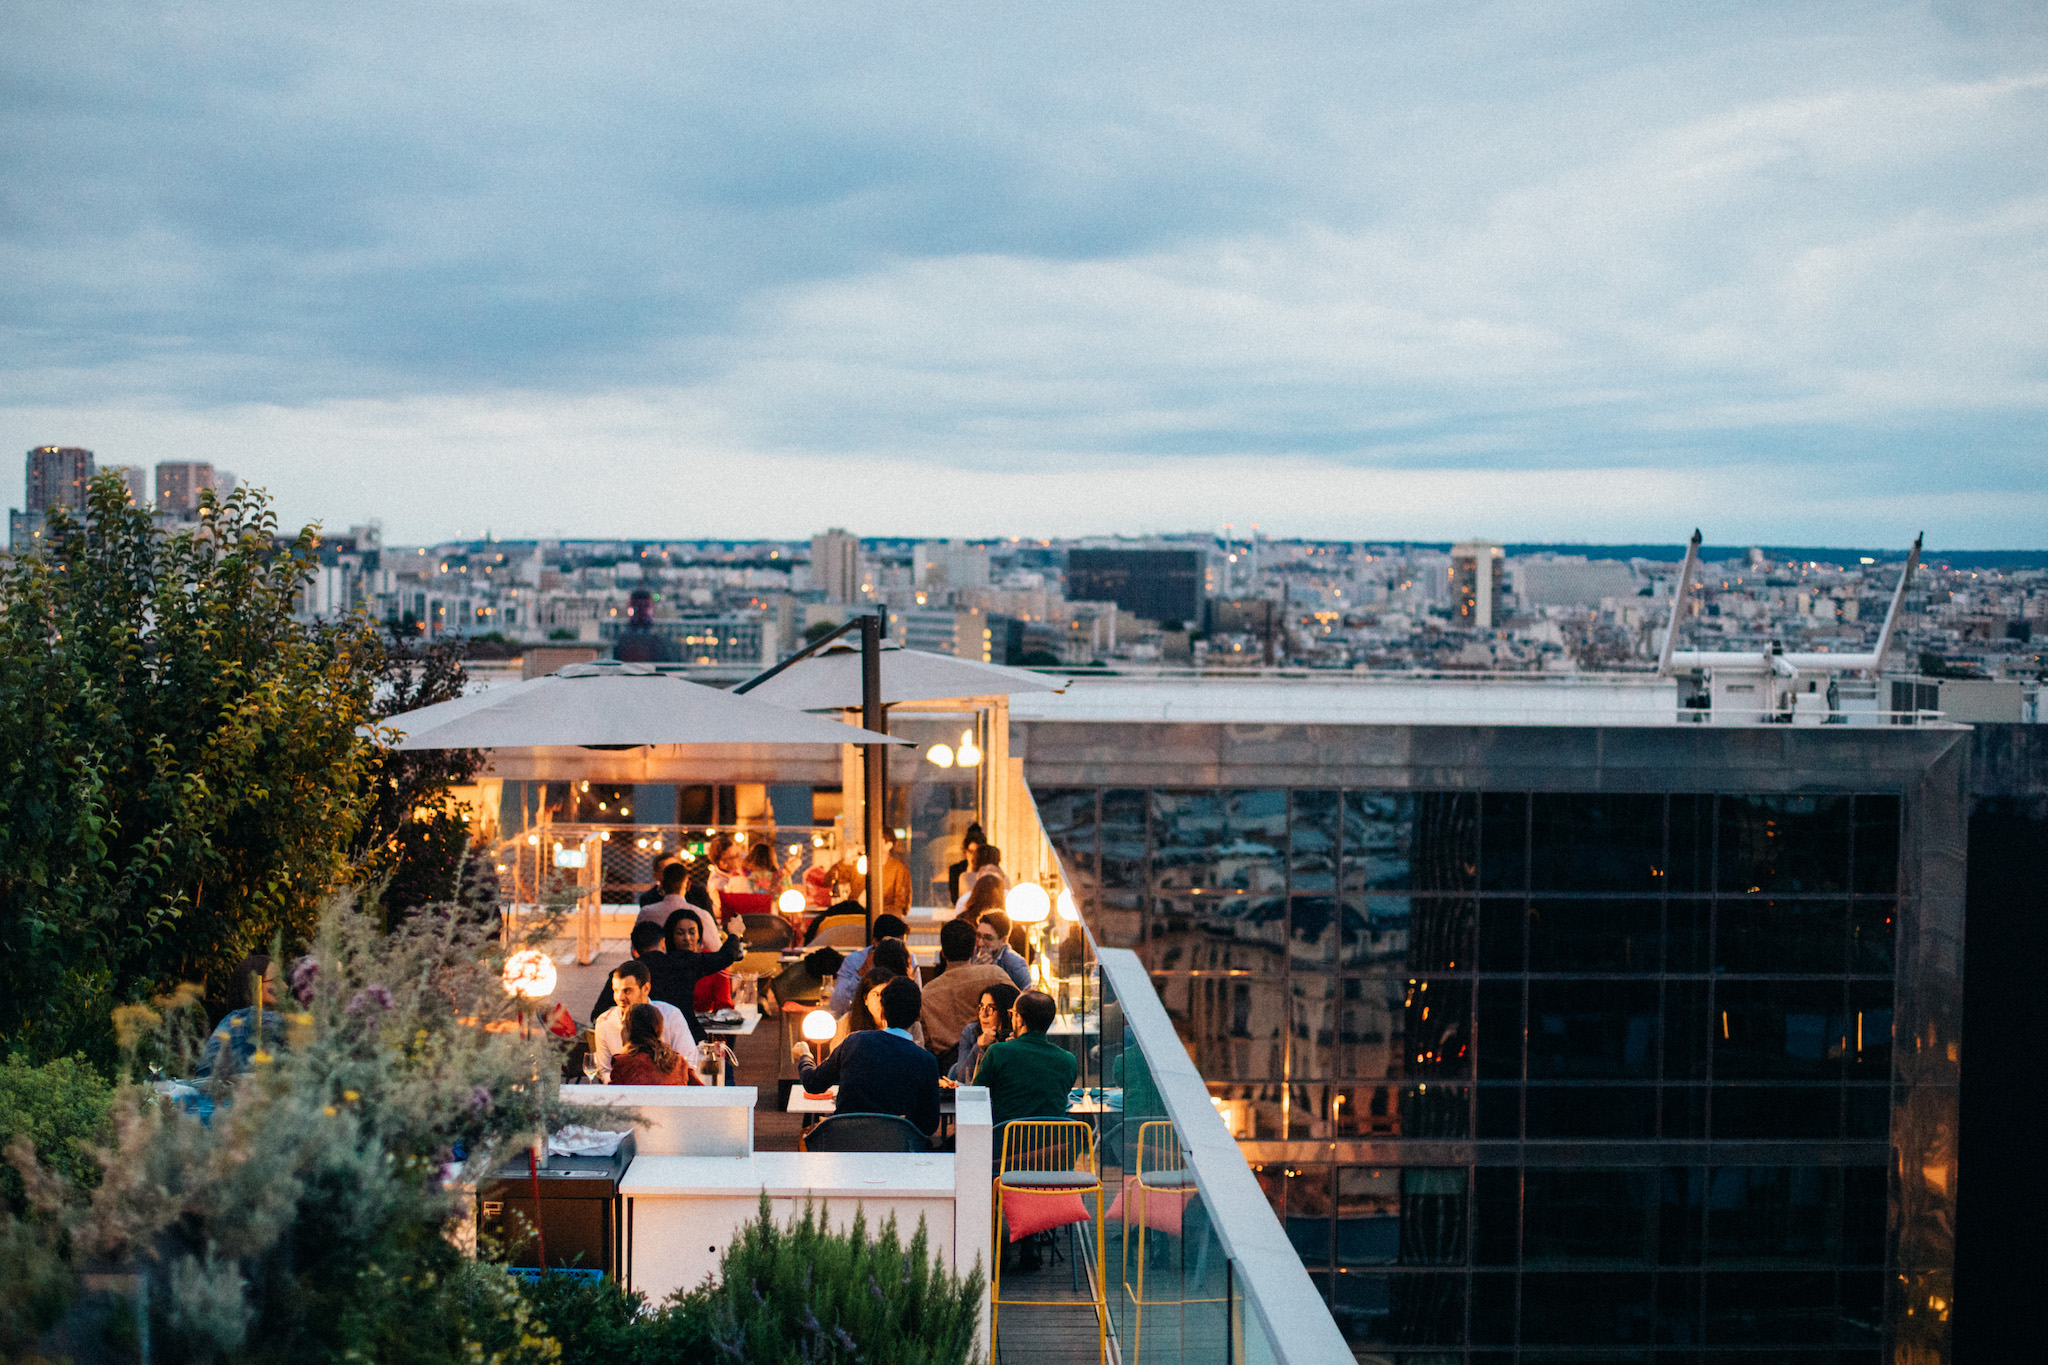 The terrace of the rooftop bar Laho. It is dusk and there are people seated at tables. The lights are on and they are seated underneath umbrellas. There are some trees and plants on the left. In the background you can see a view of Paris under a grey, cloudy sky.